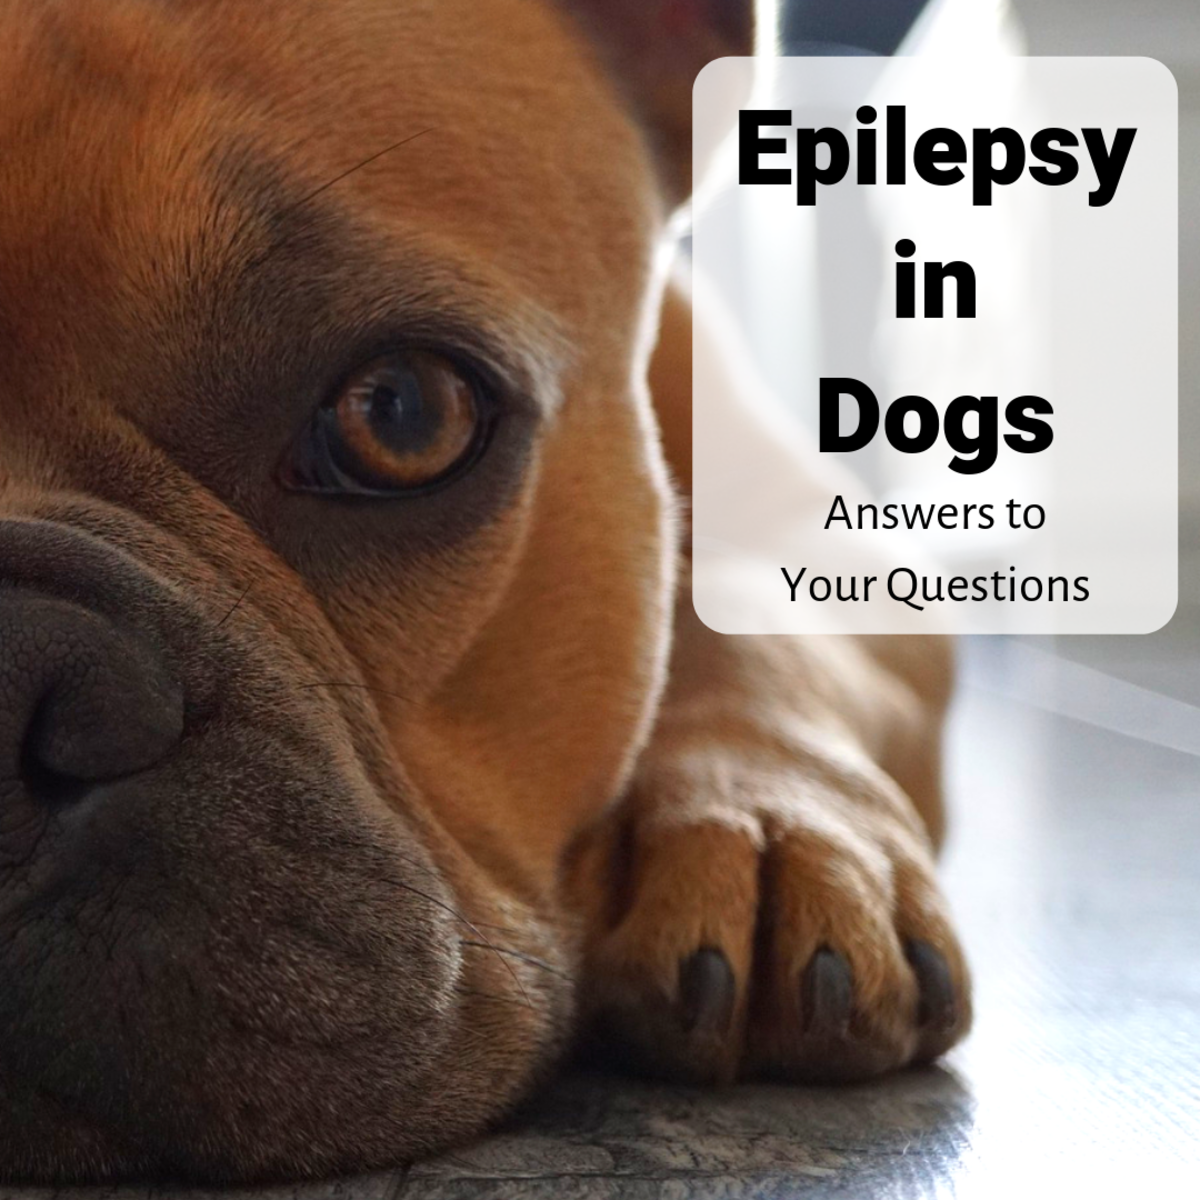 Learn about canine epilepsy based on an interview with a veterinarian.